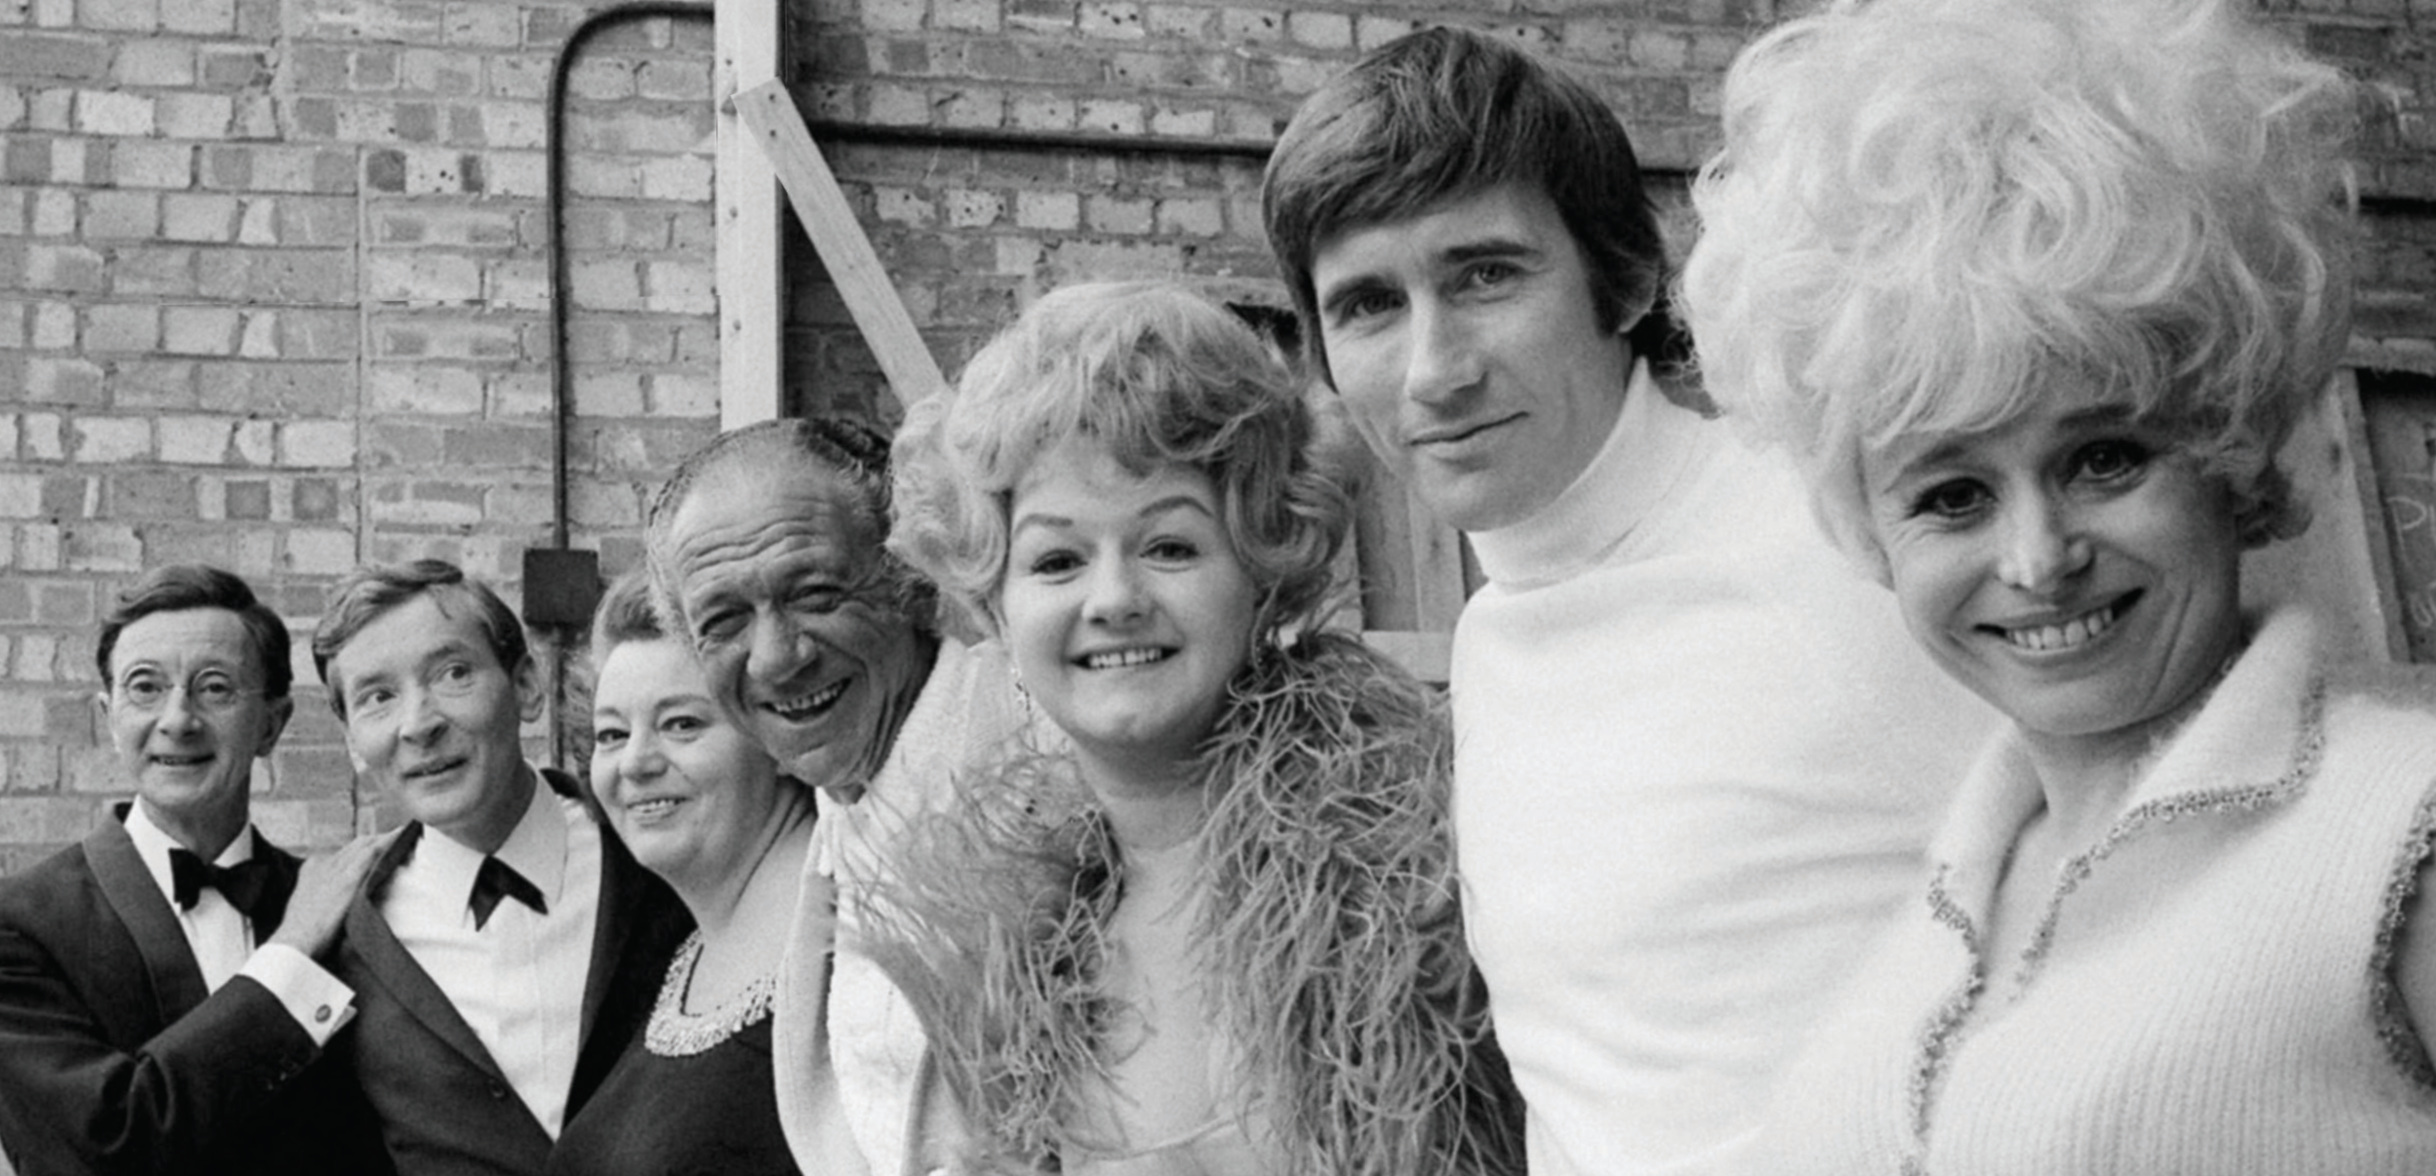 Pictured during a break filming  Carry On Again Doctor  in April 1969 at Pinewood Studios: Charles Hawtrey; Kenneth Williams; Hattie Jacques; Sid James; Joan Sims; Jim Dale; Barbara Windsor.